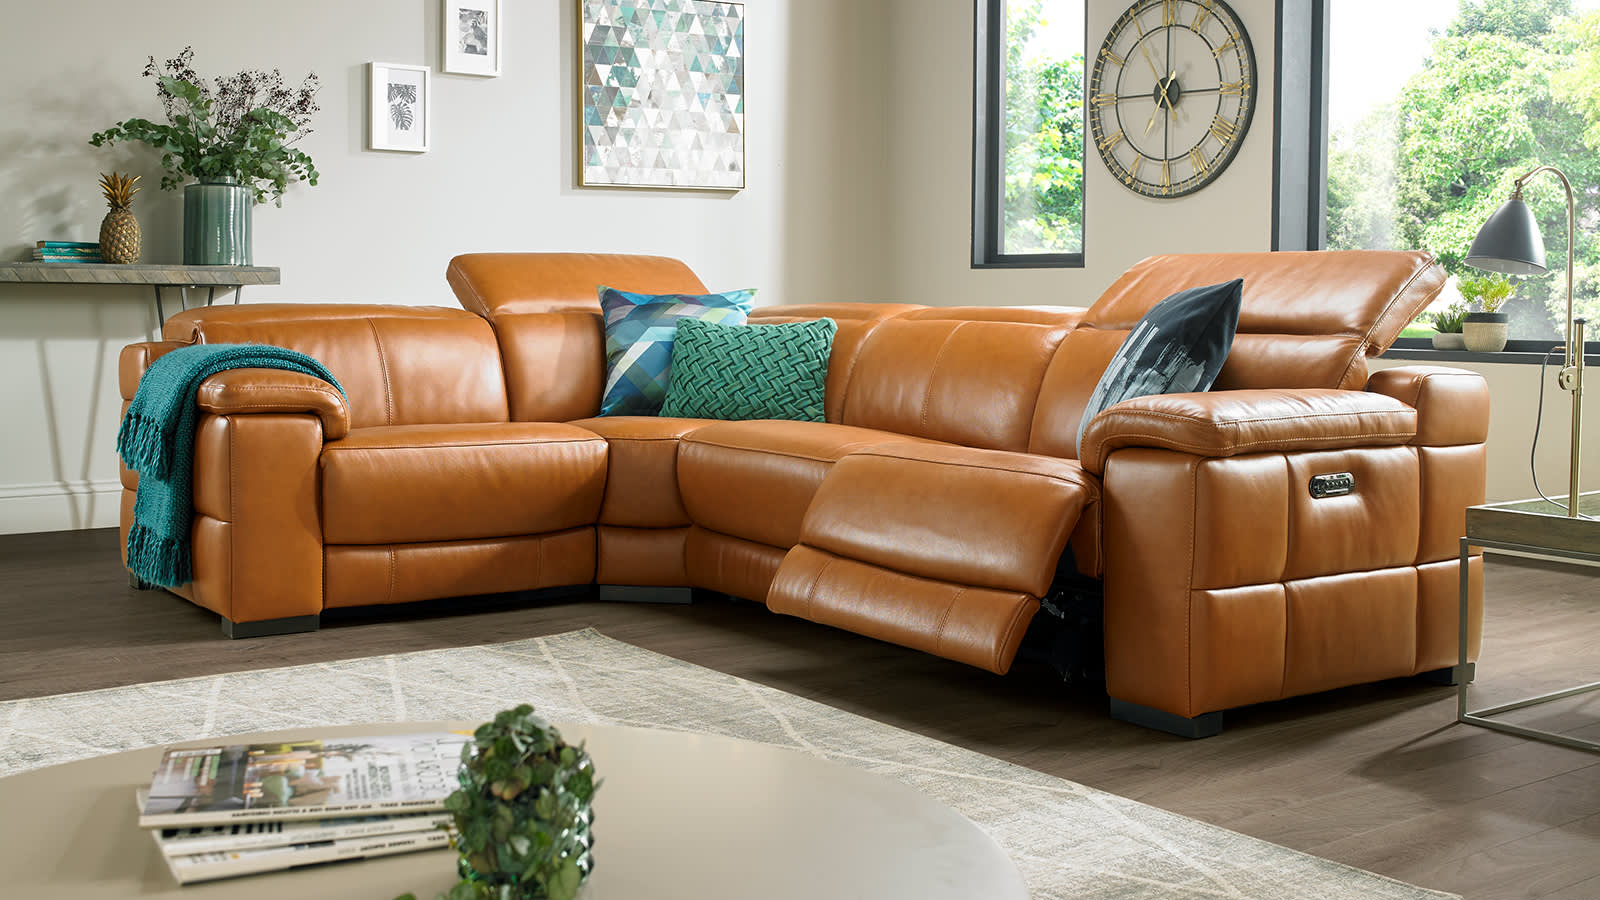 Sofology In Recliner Sofa Chairs (View 9 of 20)